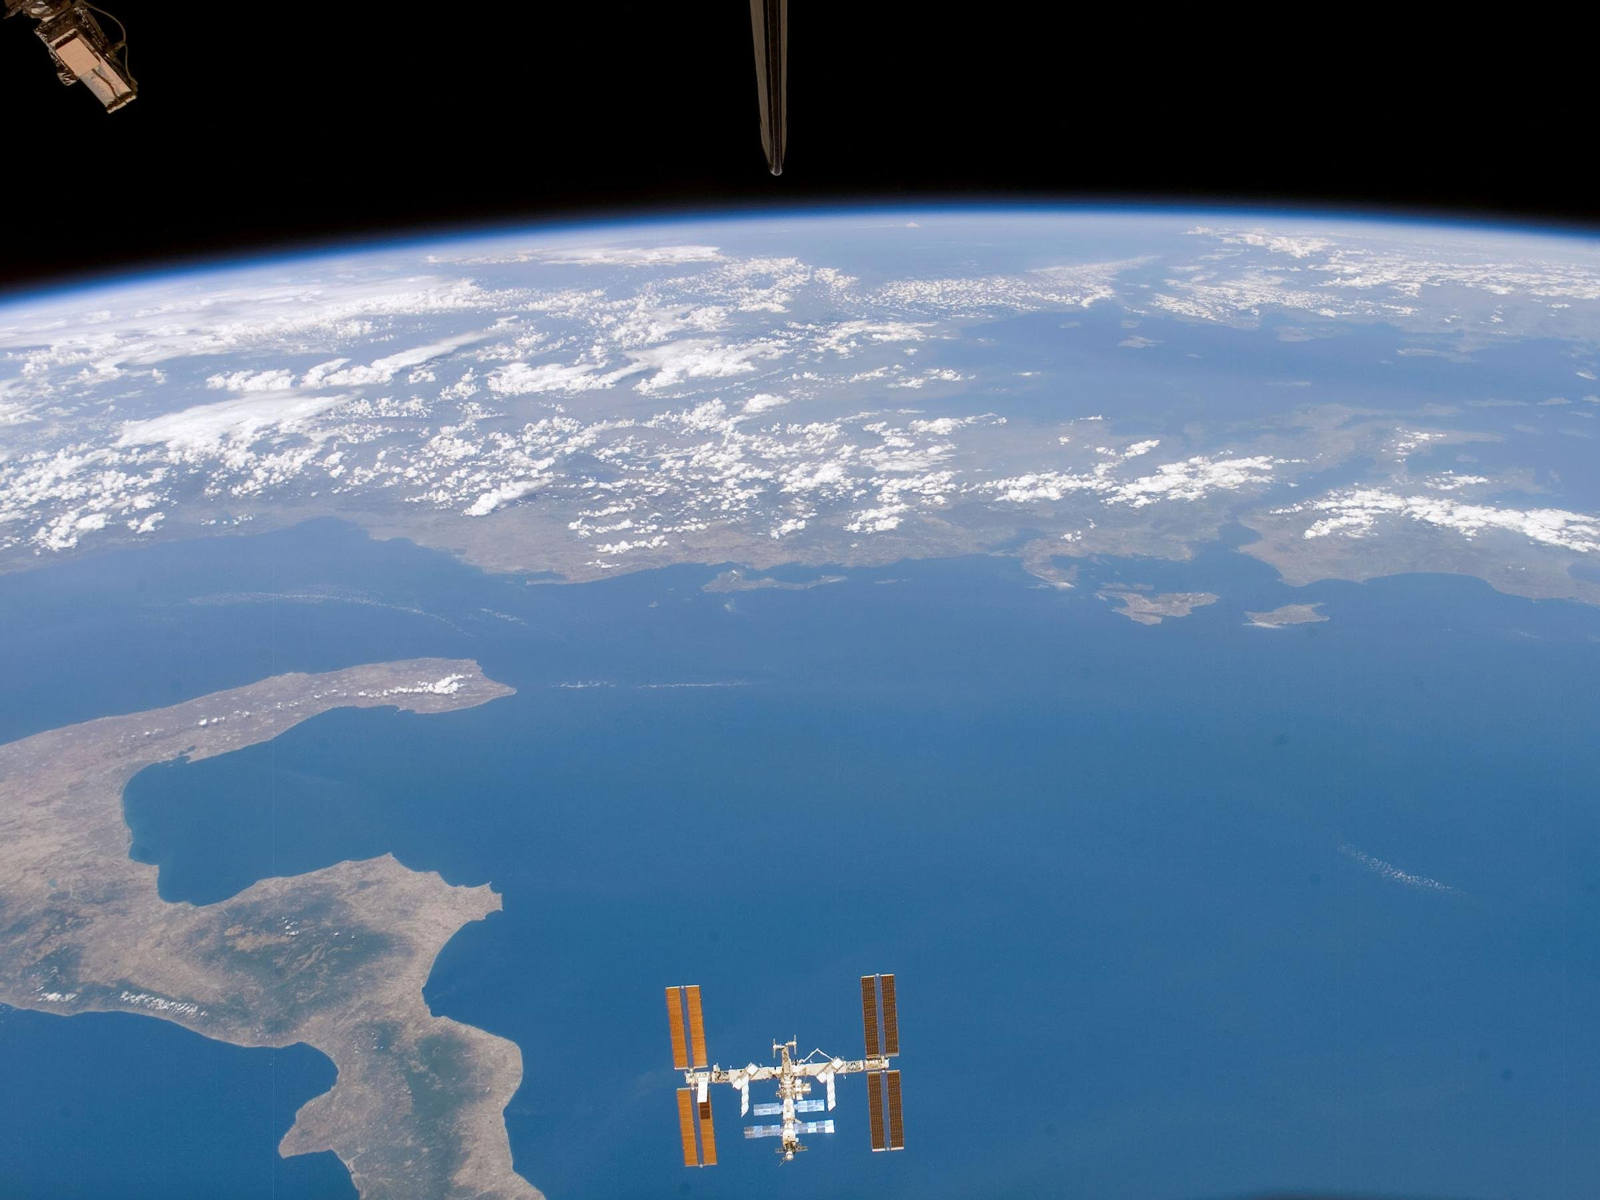 Space Station above Ionian Sea